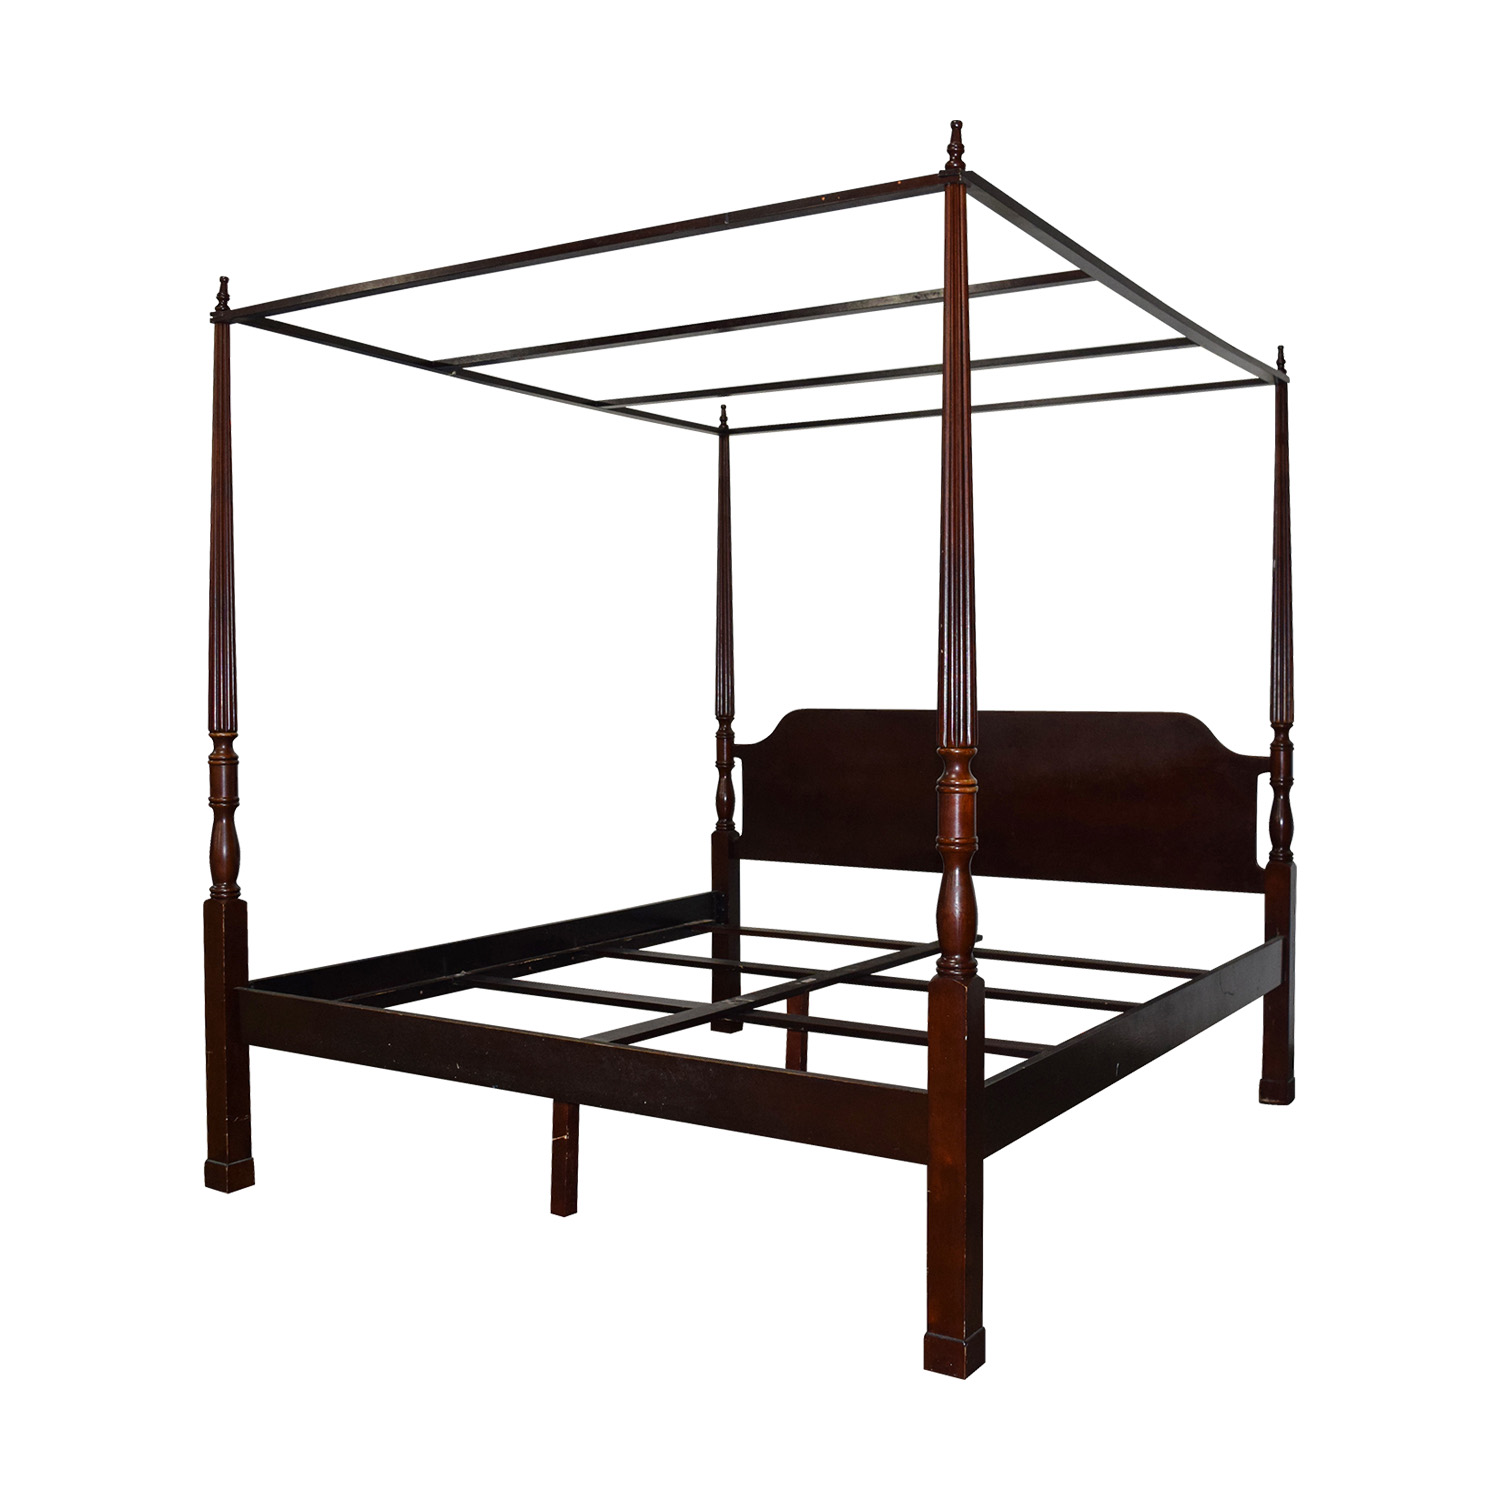 buy Bombay Bombay Canopy King Cherry Wood Bed Frame online